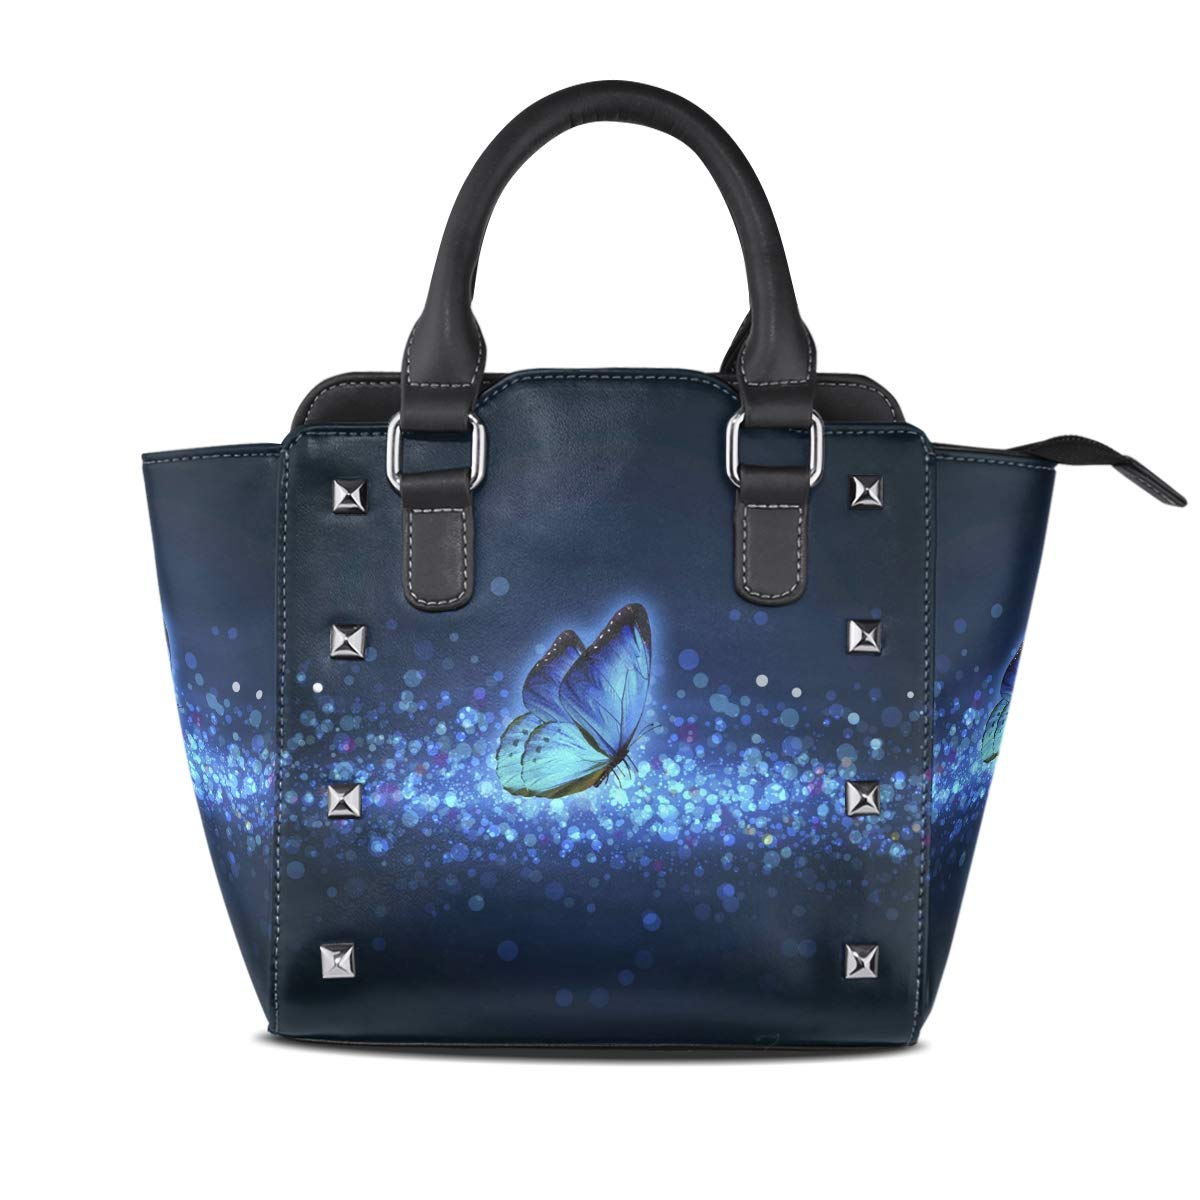 Design4 Handbag colorful Butterfly Genuine Leather Tote Rivet Bag Shoulder Strap Top Handle Women